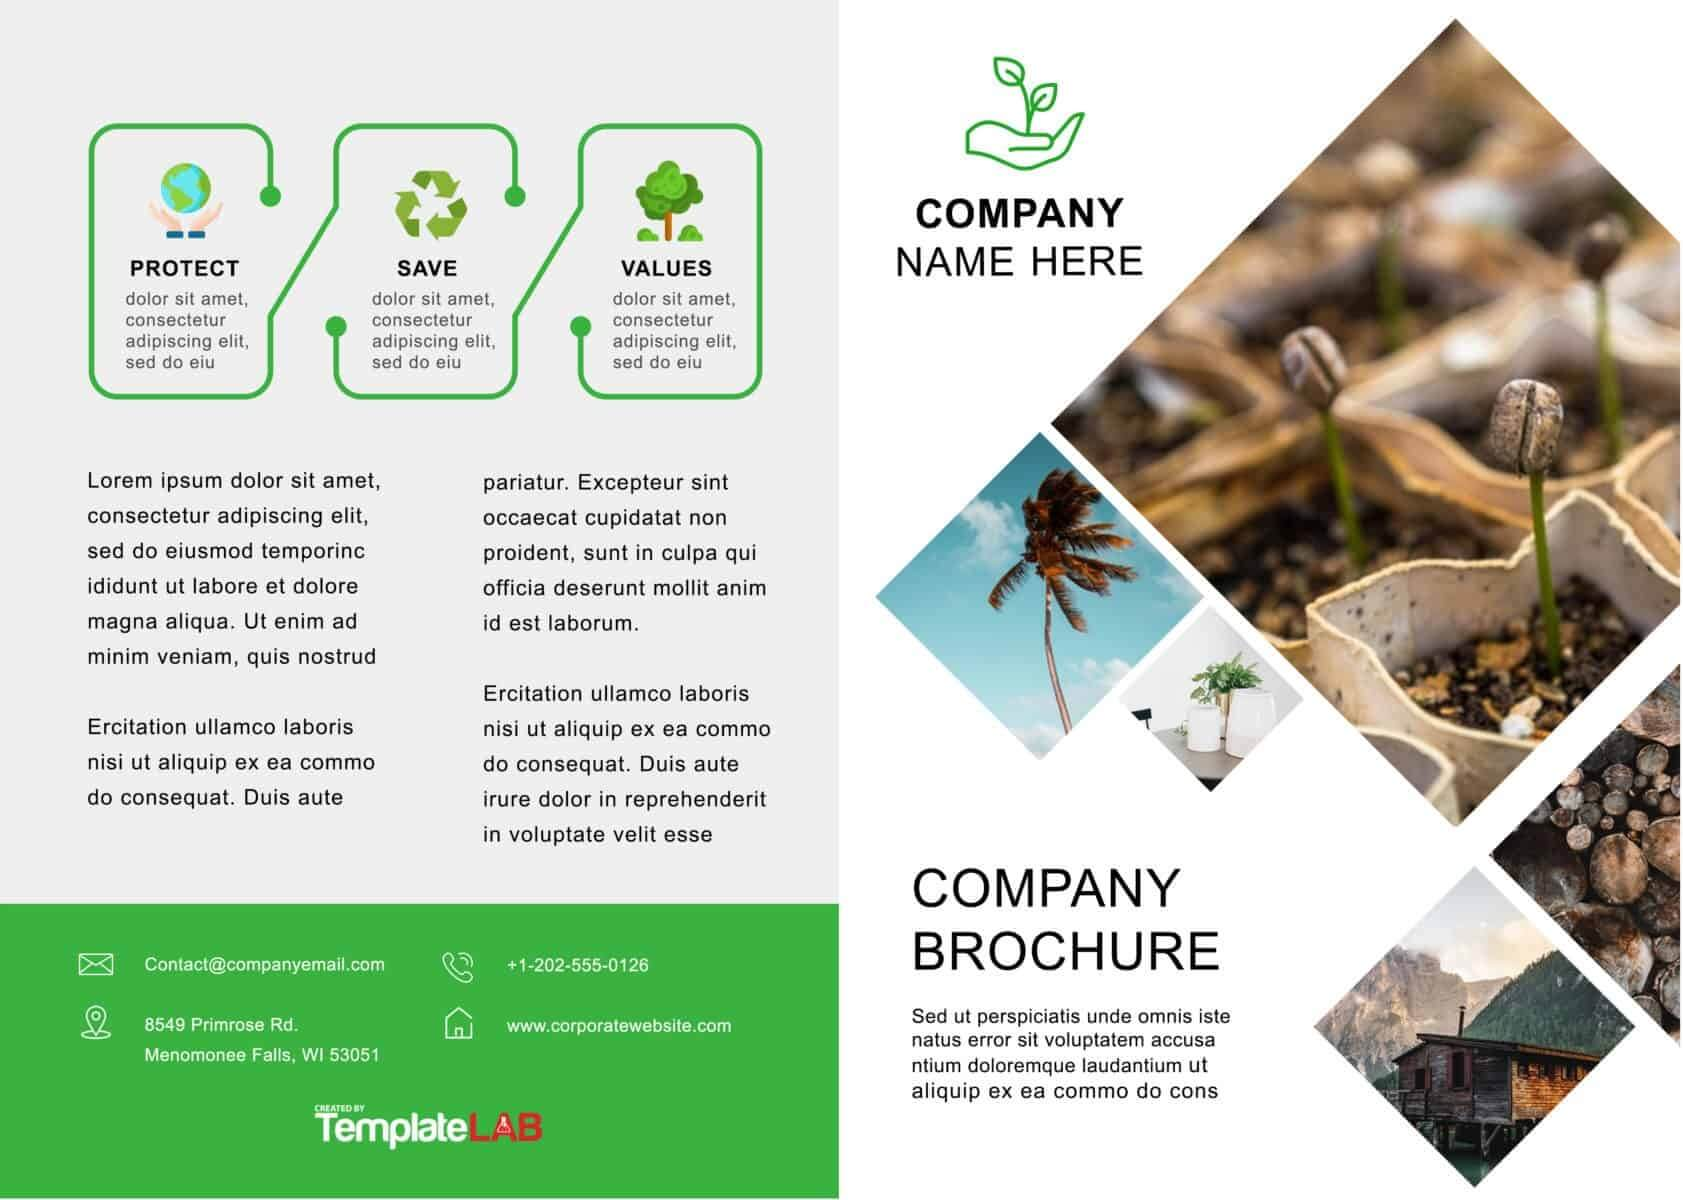 33 Free Brochure Templates (Word + Pdf) ᐅ Template Lab Pertaining To Word 2013 Brochure Template